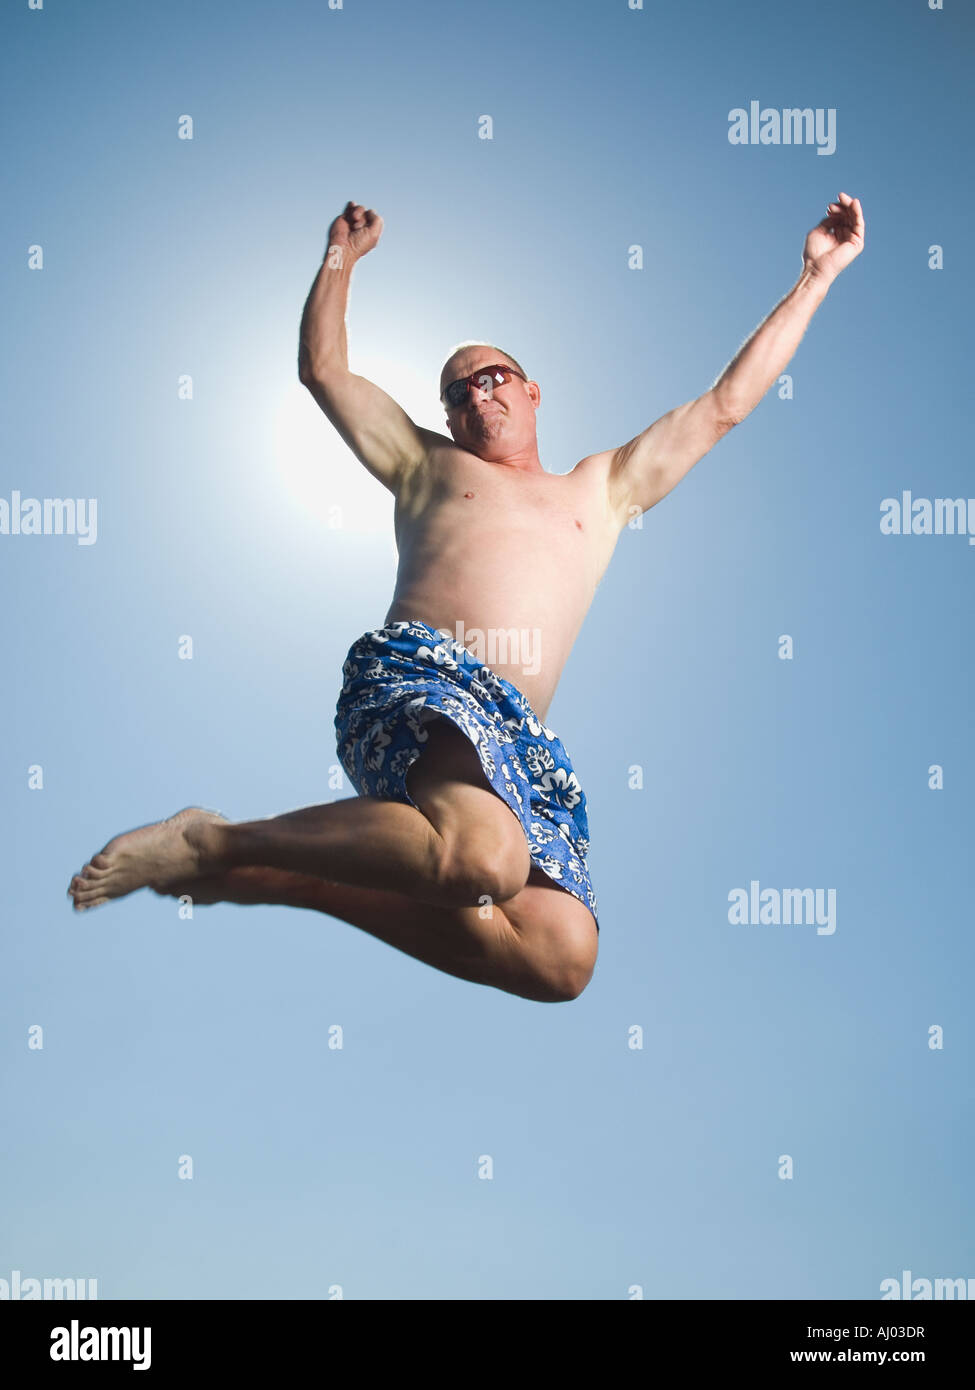 Man In Bathing Suit Stock Photos & Man In Bathing Suit Stock Images ...